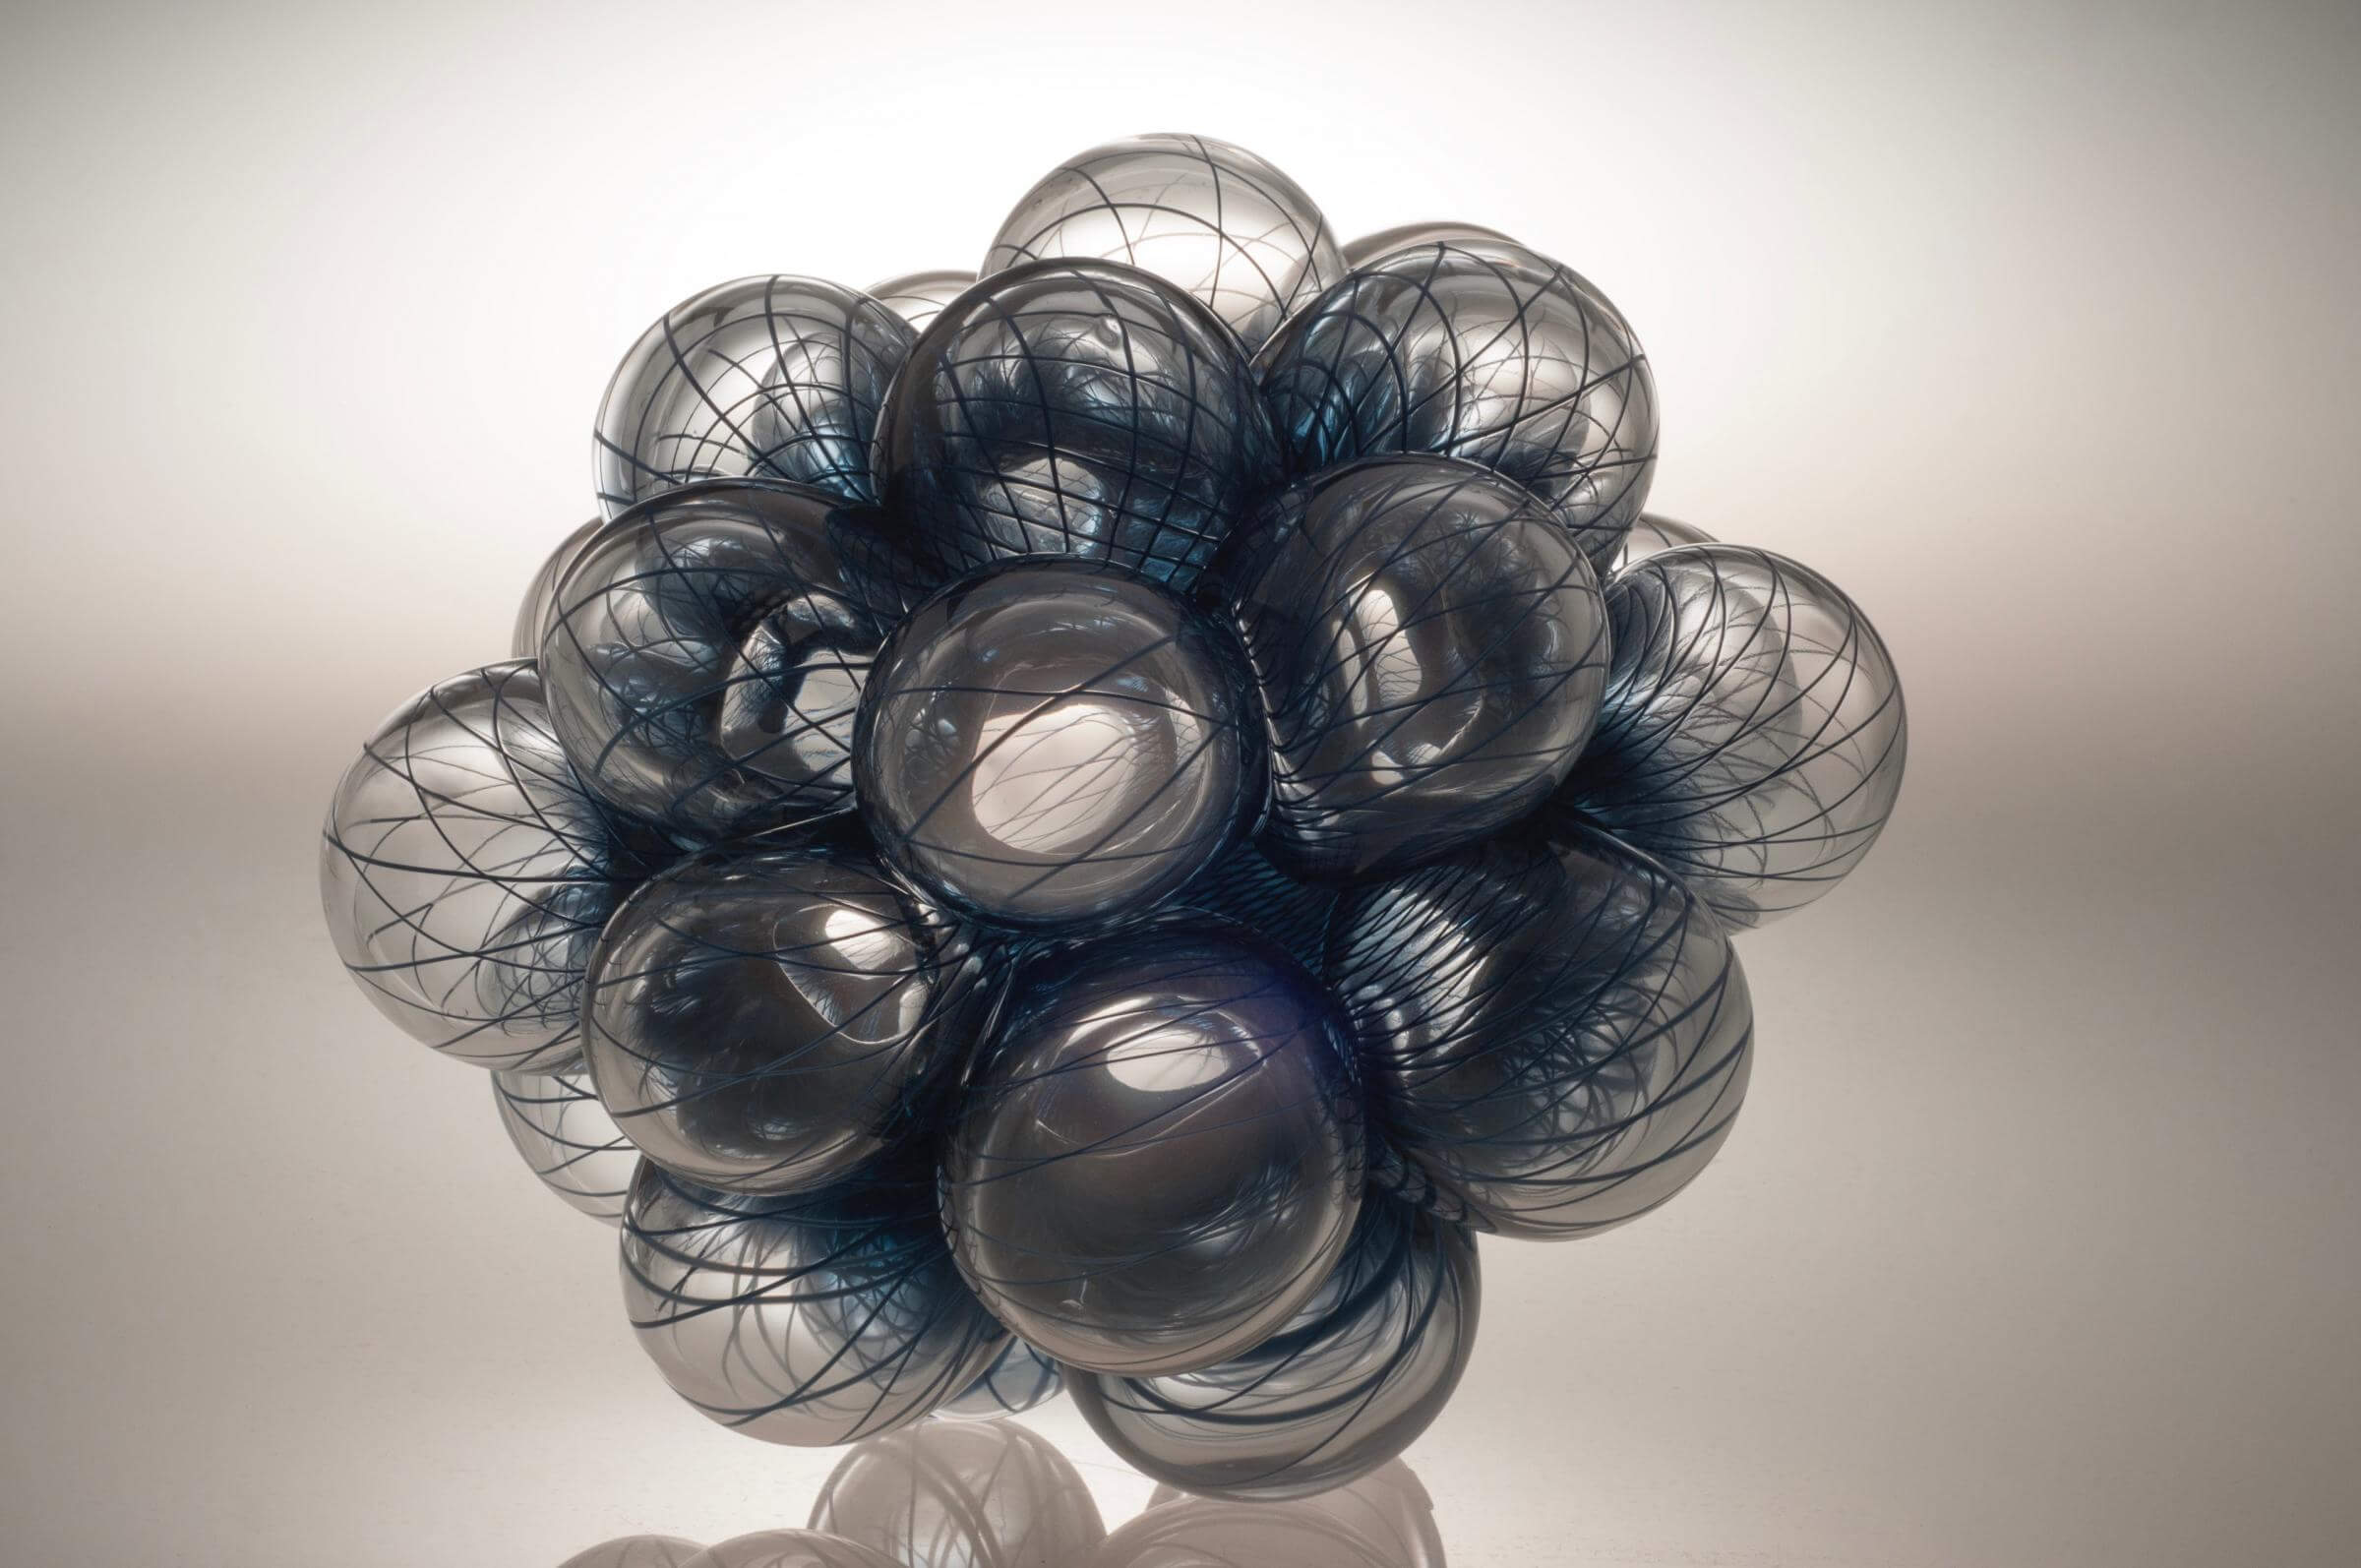 cluster of clear glass balls